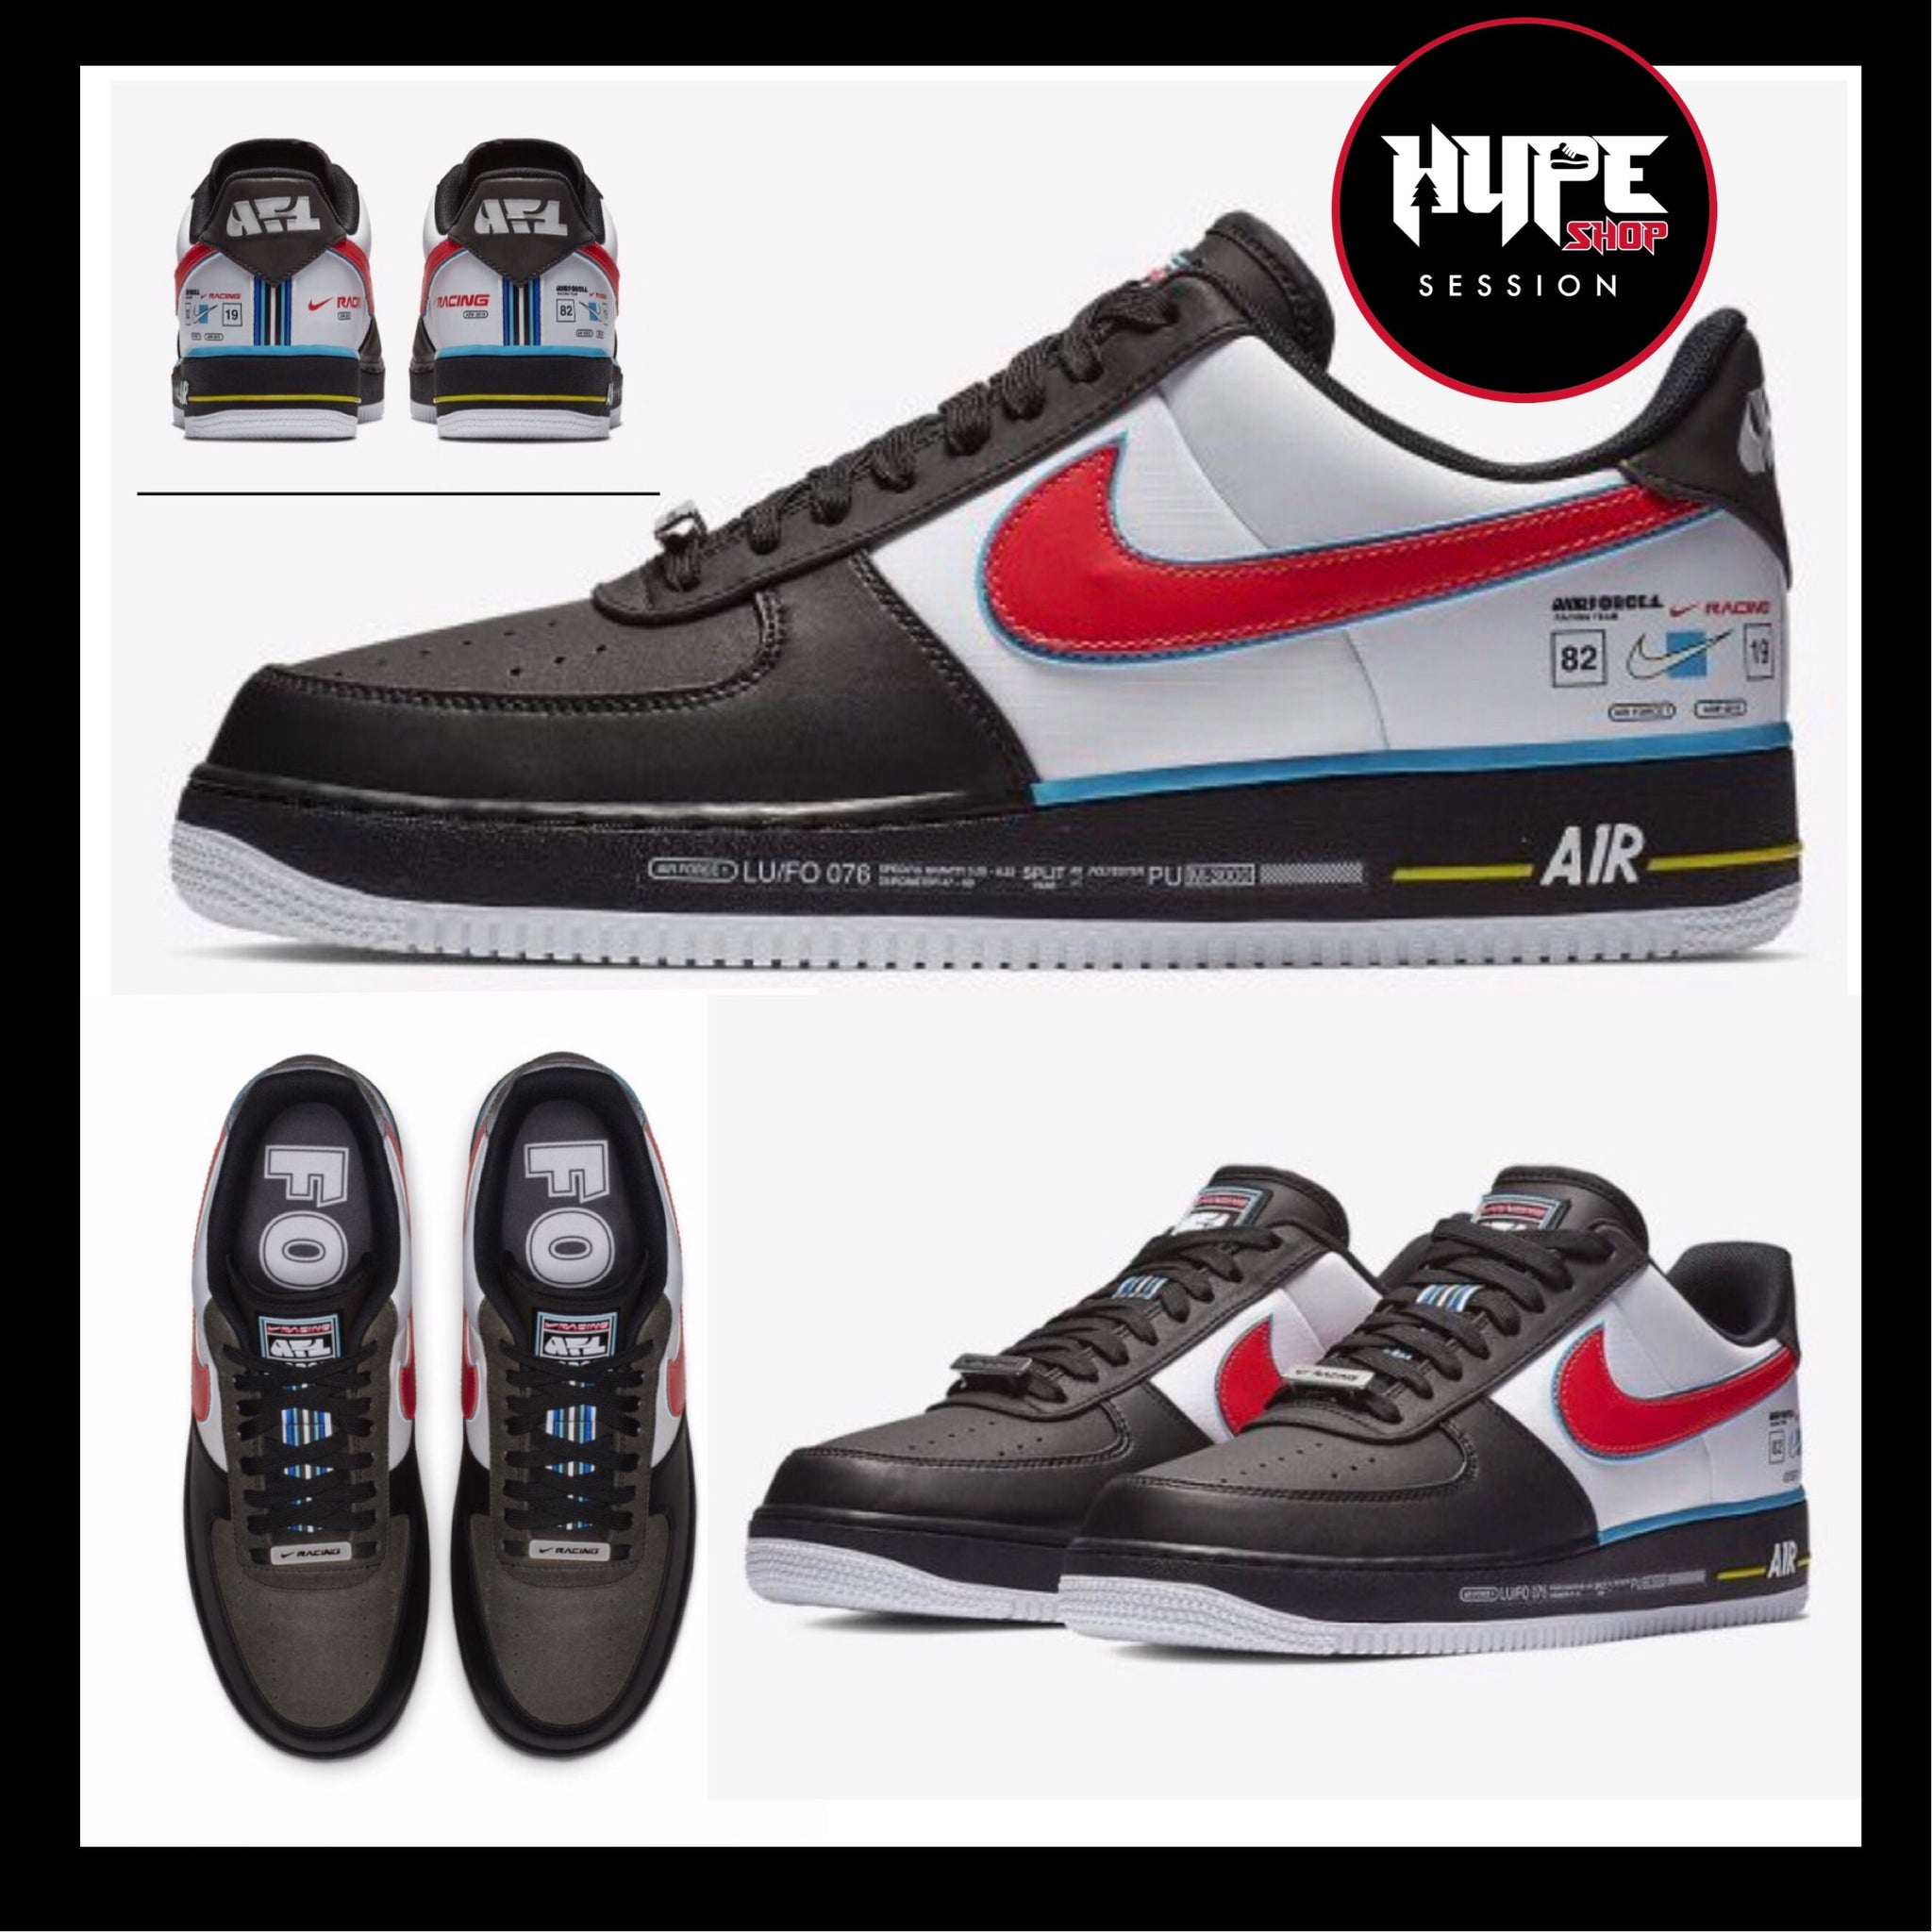 escotilla Motivación Tina  nike air force 1 racing all star cheap online